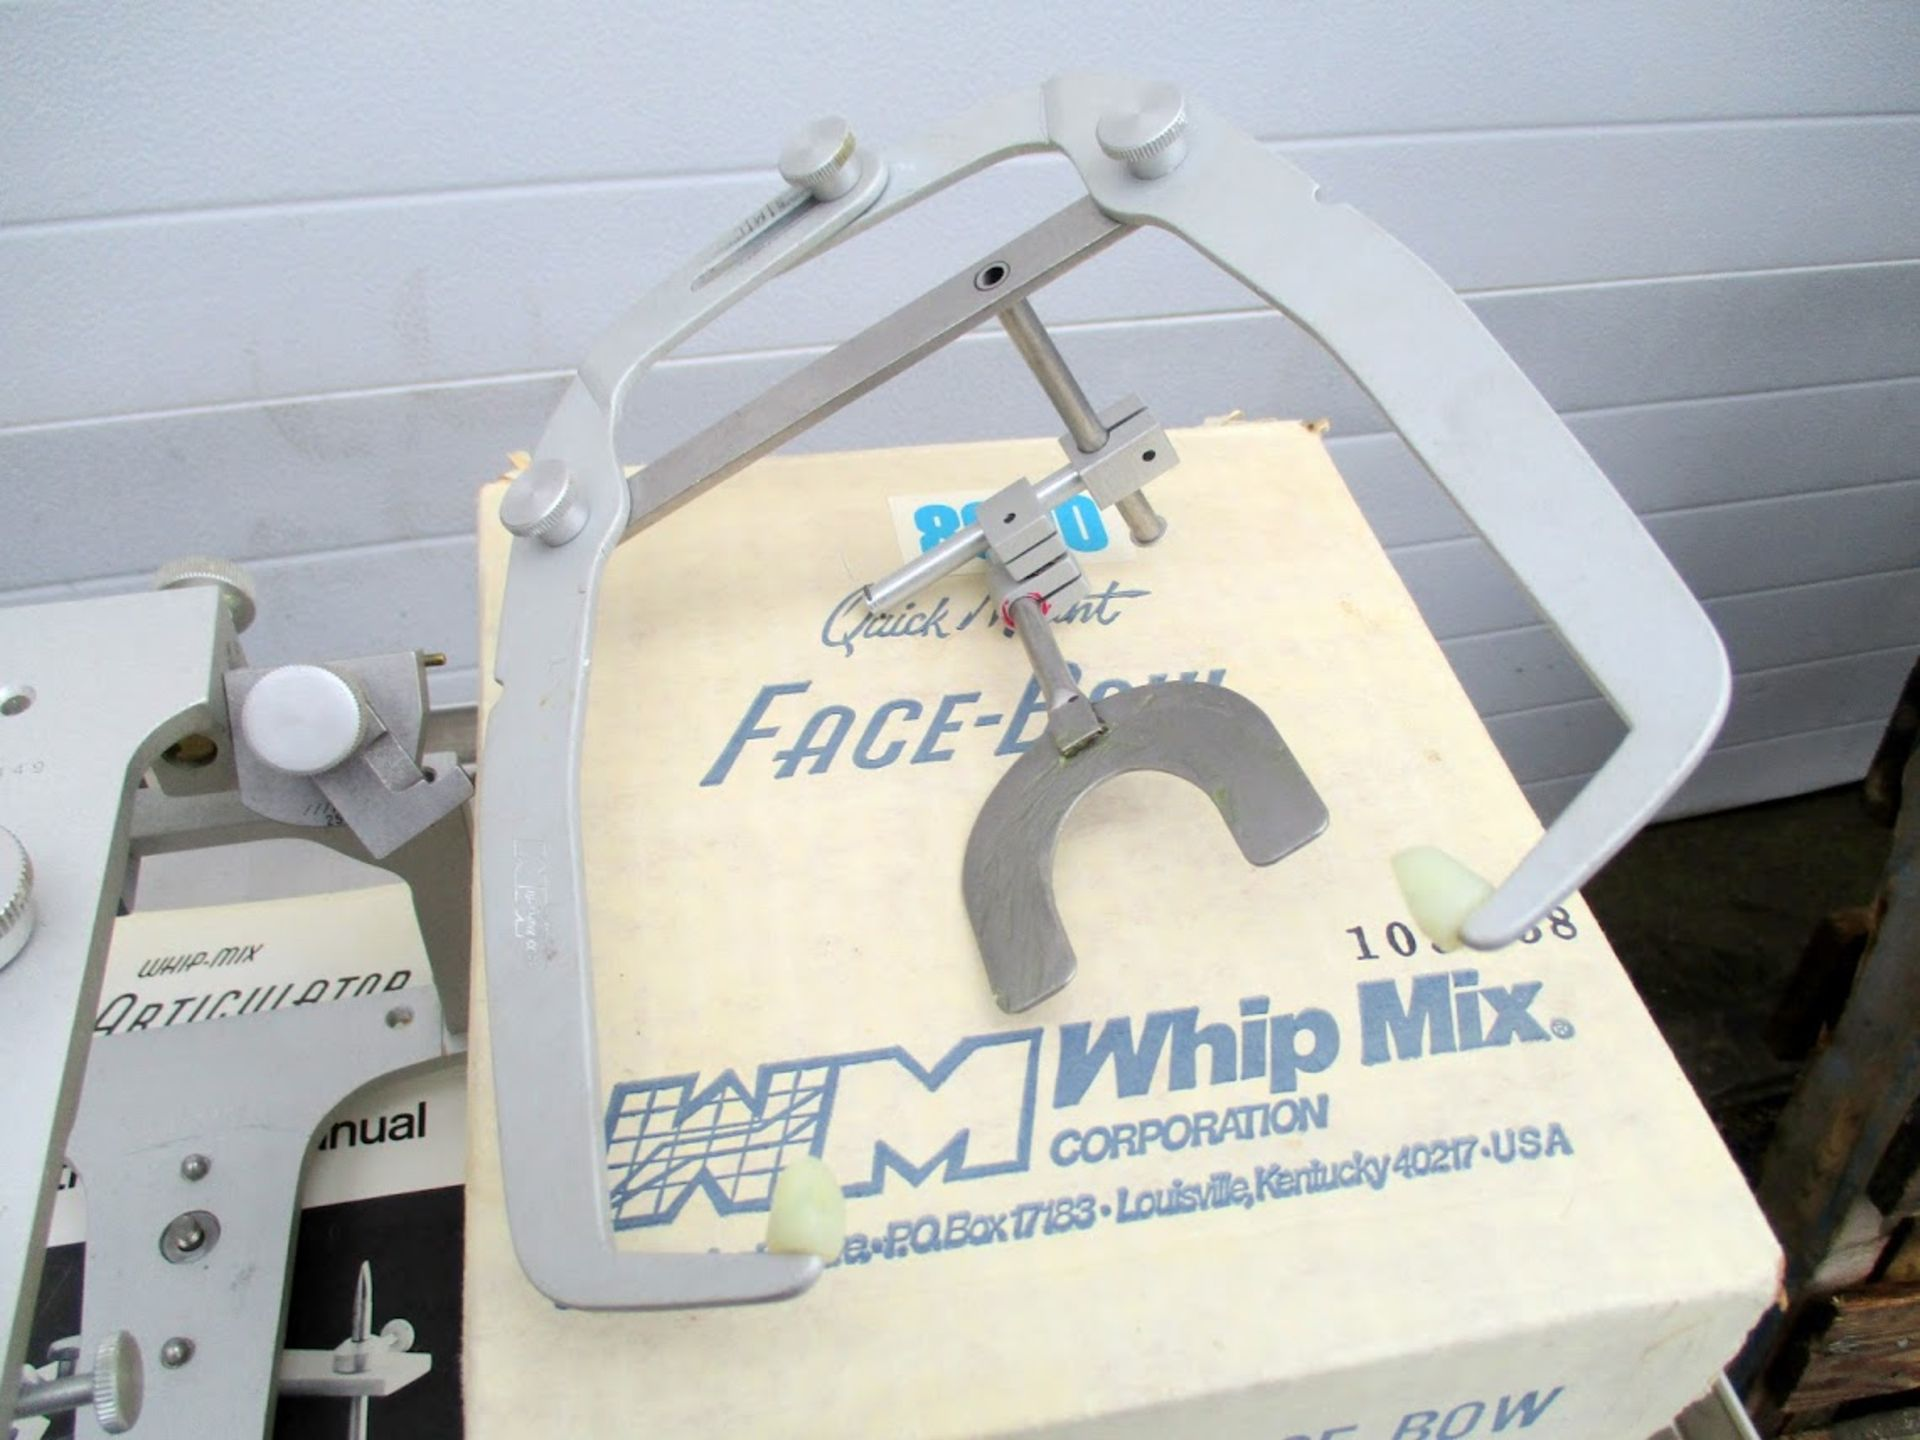 Whip Mix Dental Articulator with Whip Mix Quick Mount Face Bow - Image 2 of 3